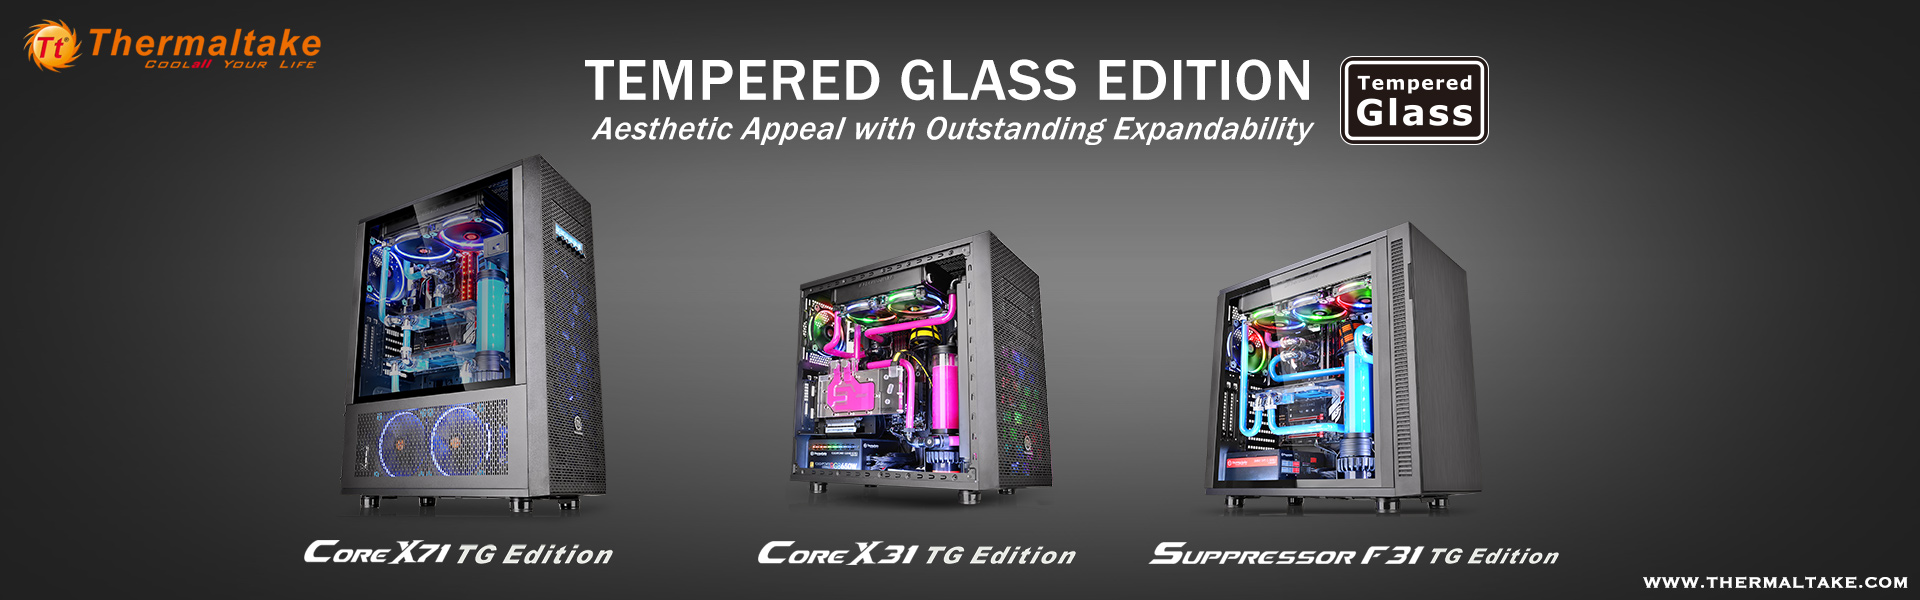 Tg Tempered Glass Edition Mid Tower Chassis Michaelieclark Thermaltake Core P90 New X71aec2a2core X31aec2a2suppressor F31